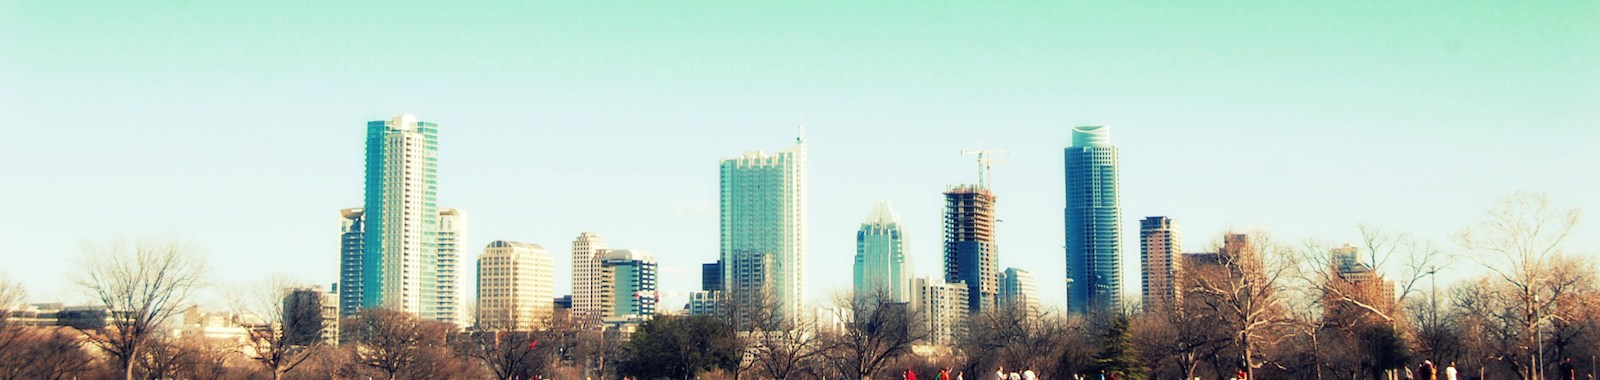 The city skyline of austin, texas on a windy day. people in the park flying a kite in the blue sky.